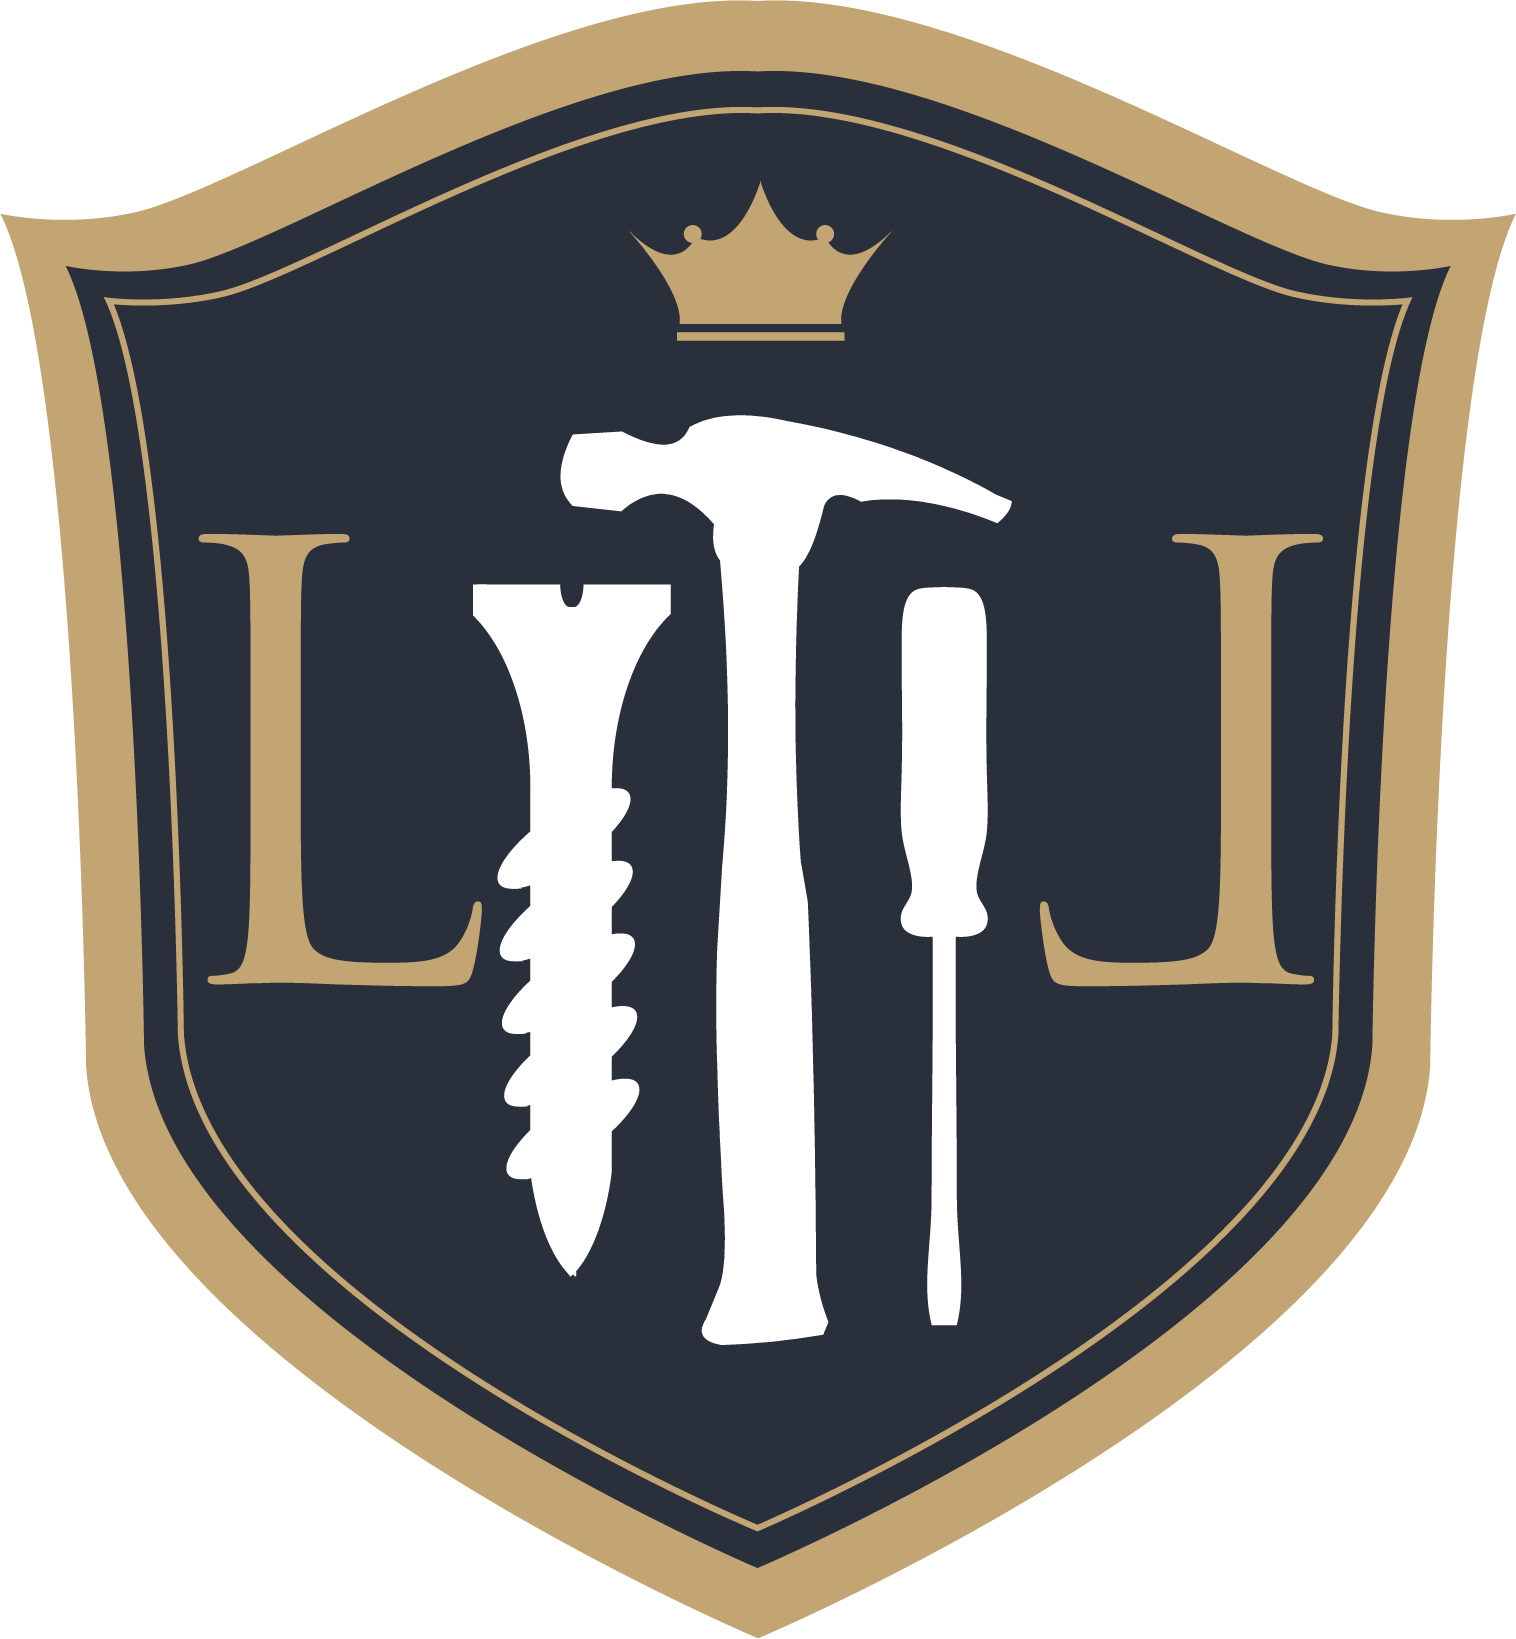 LAWRENCE-LOGO-01.png